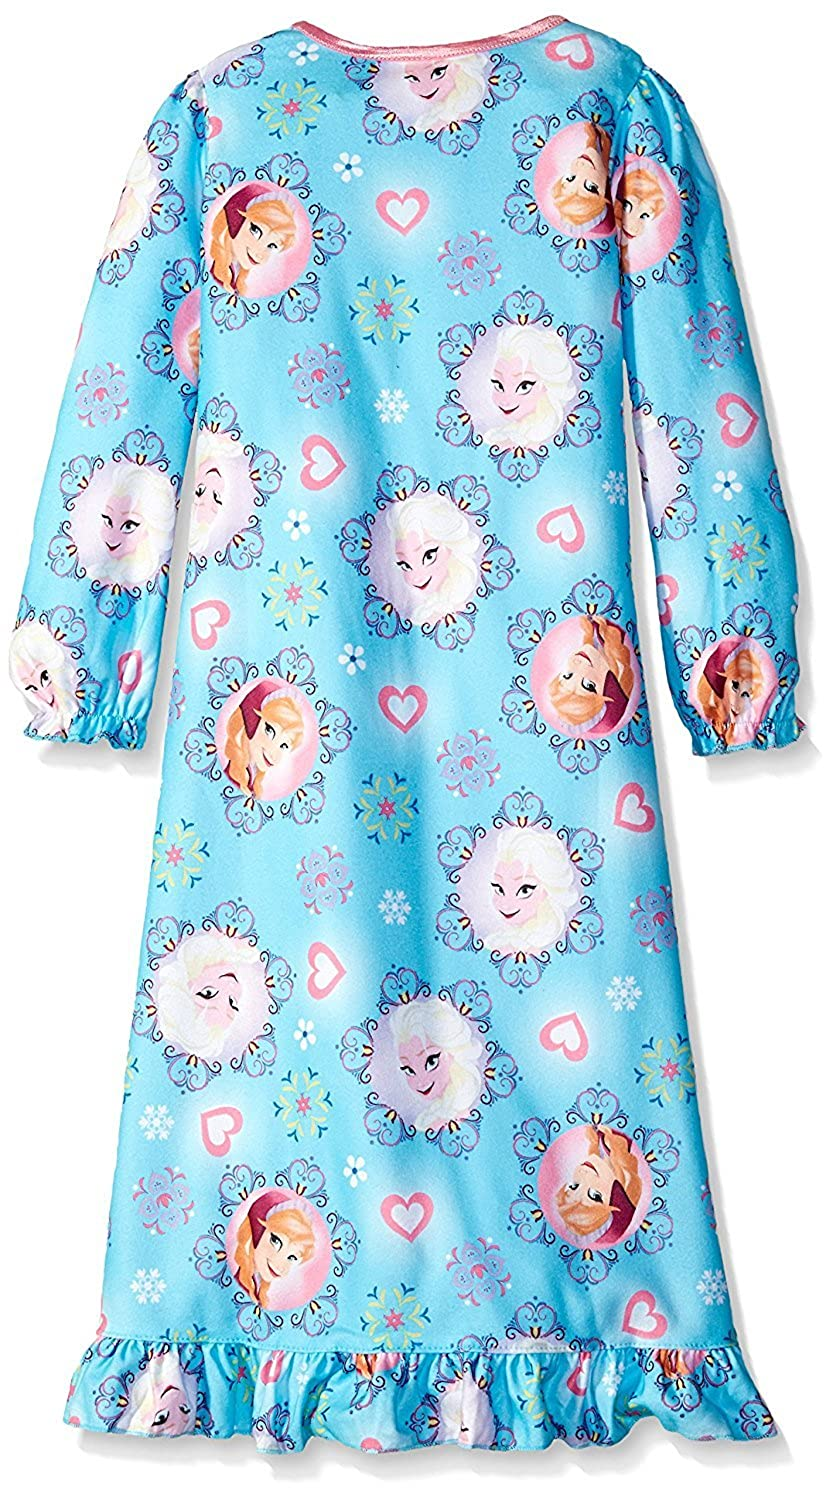 10 Blue Disney Little Girls Frozen Elsa and Anna Snowflakes of Arendelle Nightgown Size 10 Blue